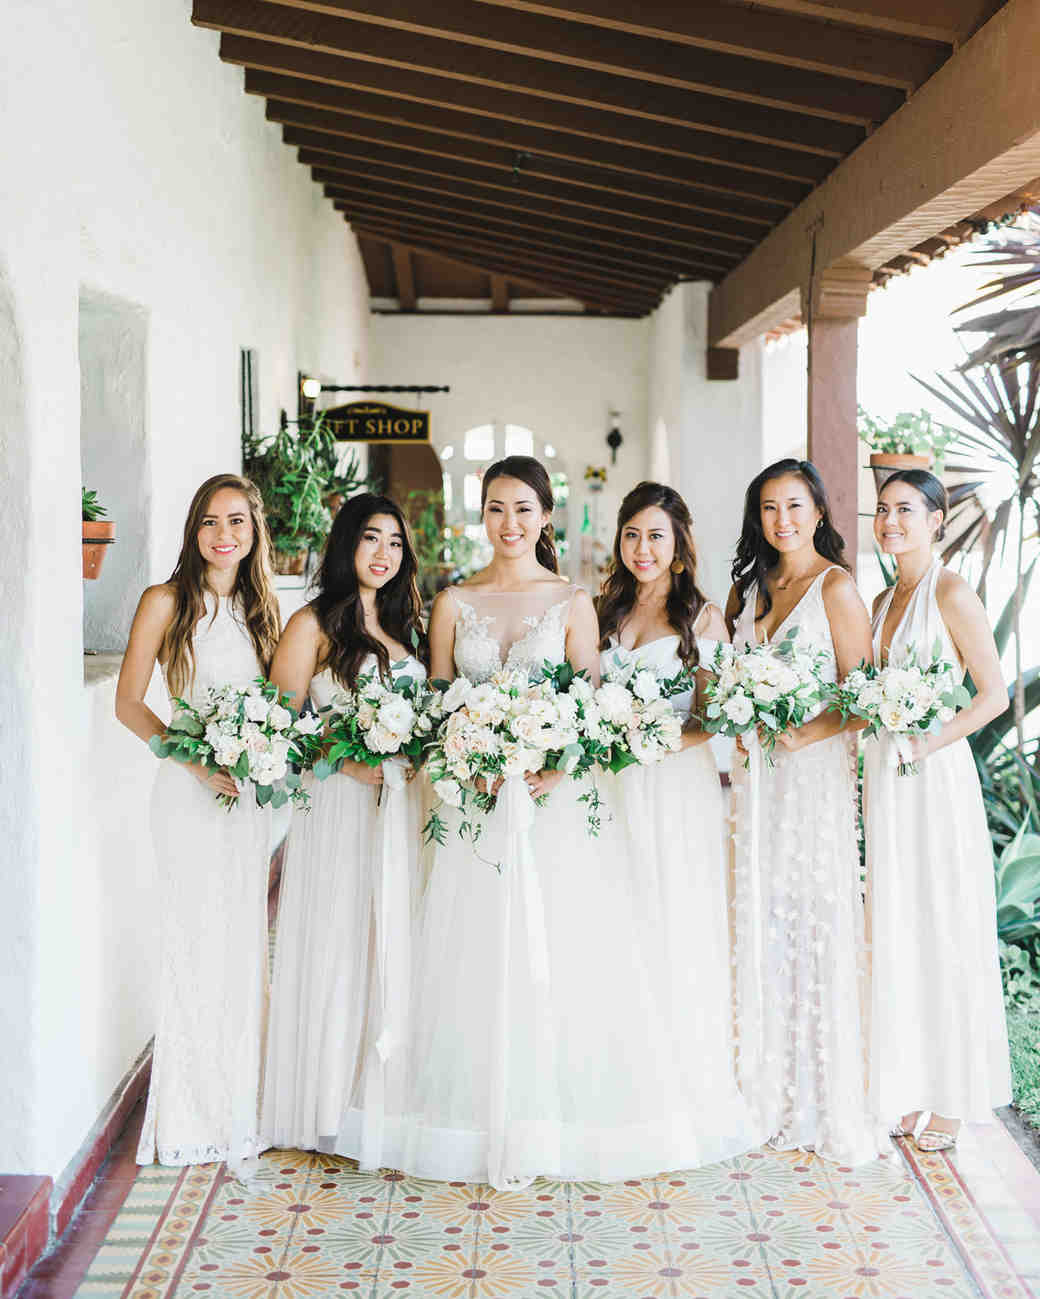 26 Chic Bridal Parties Wearing All-White Dresses | Martha Stewart ...